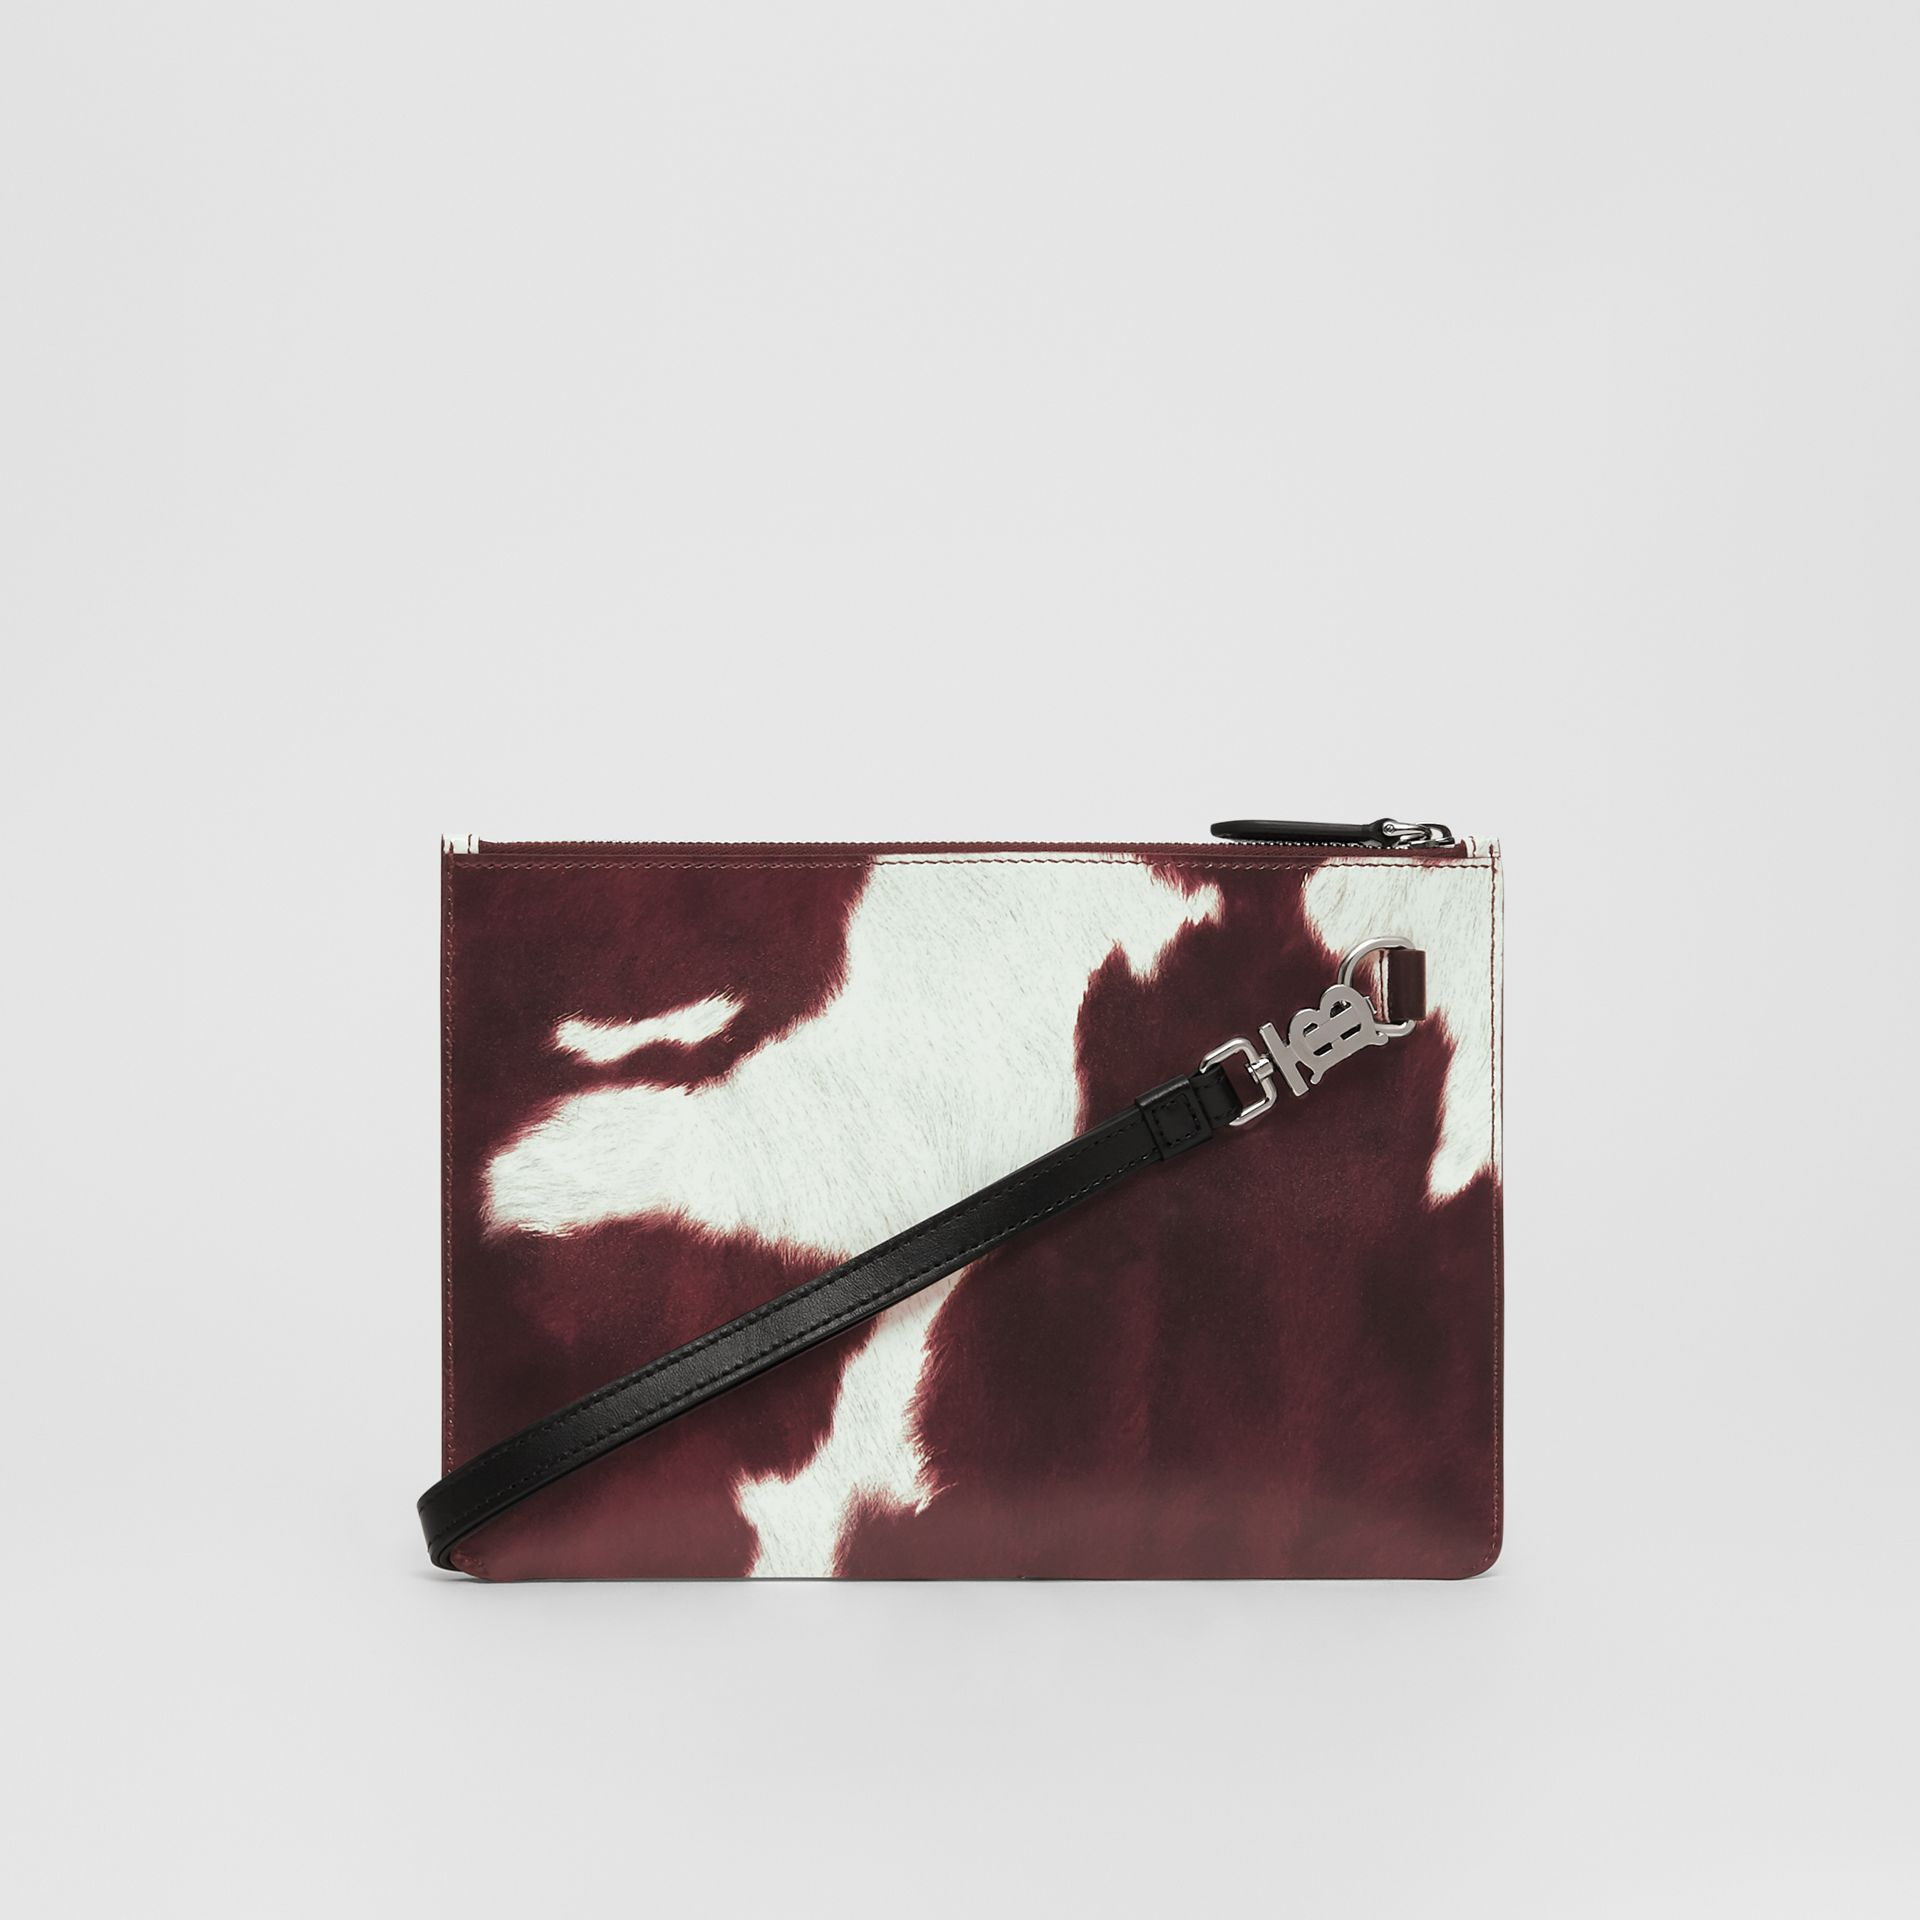 Cow Print Leather Zip Pouch in Mahogany - Women | Burberry - gallery image 5